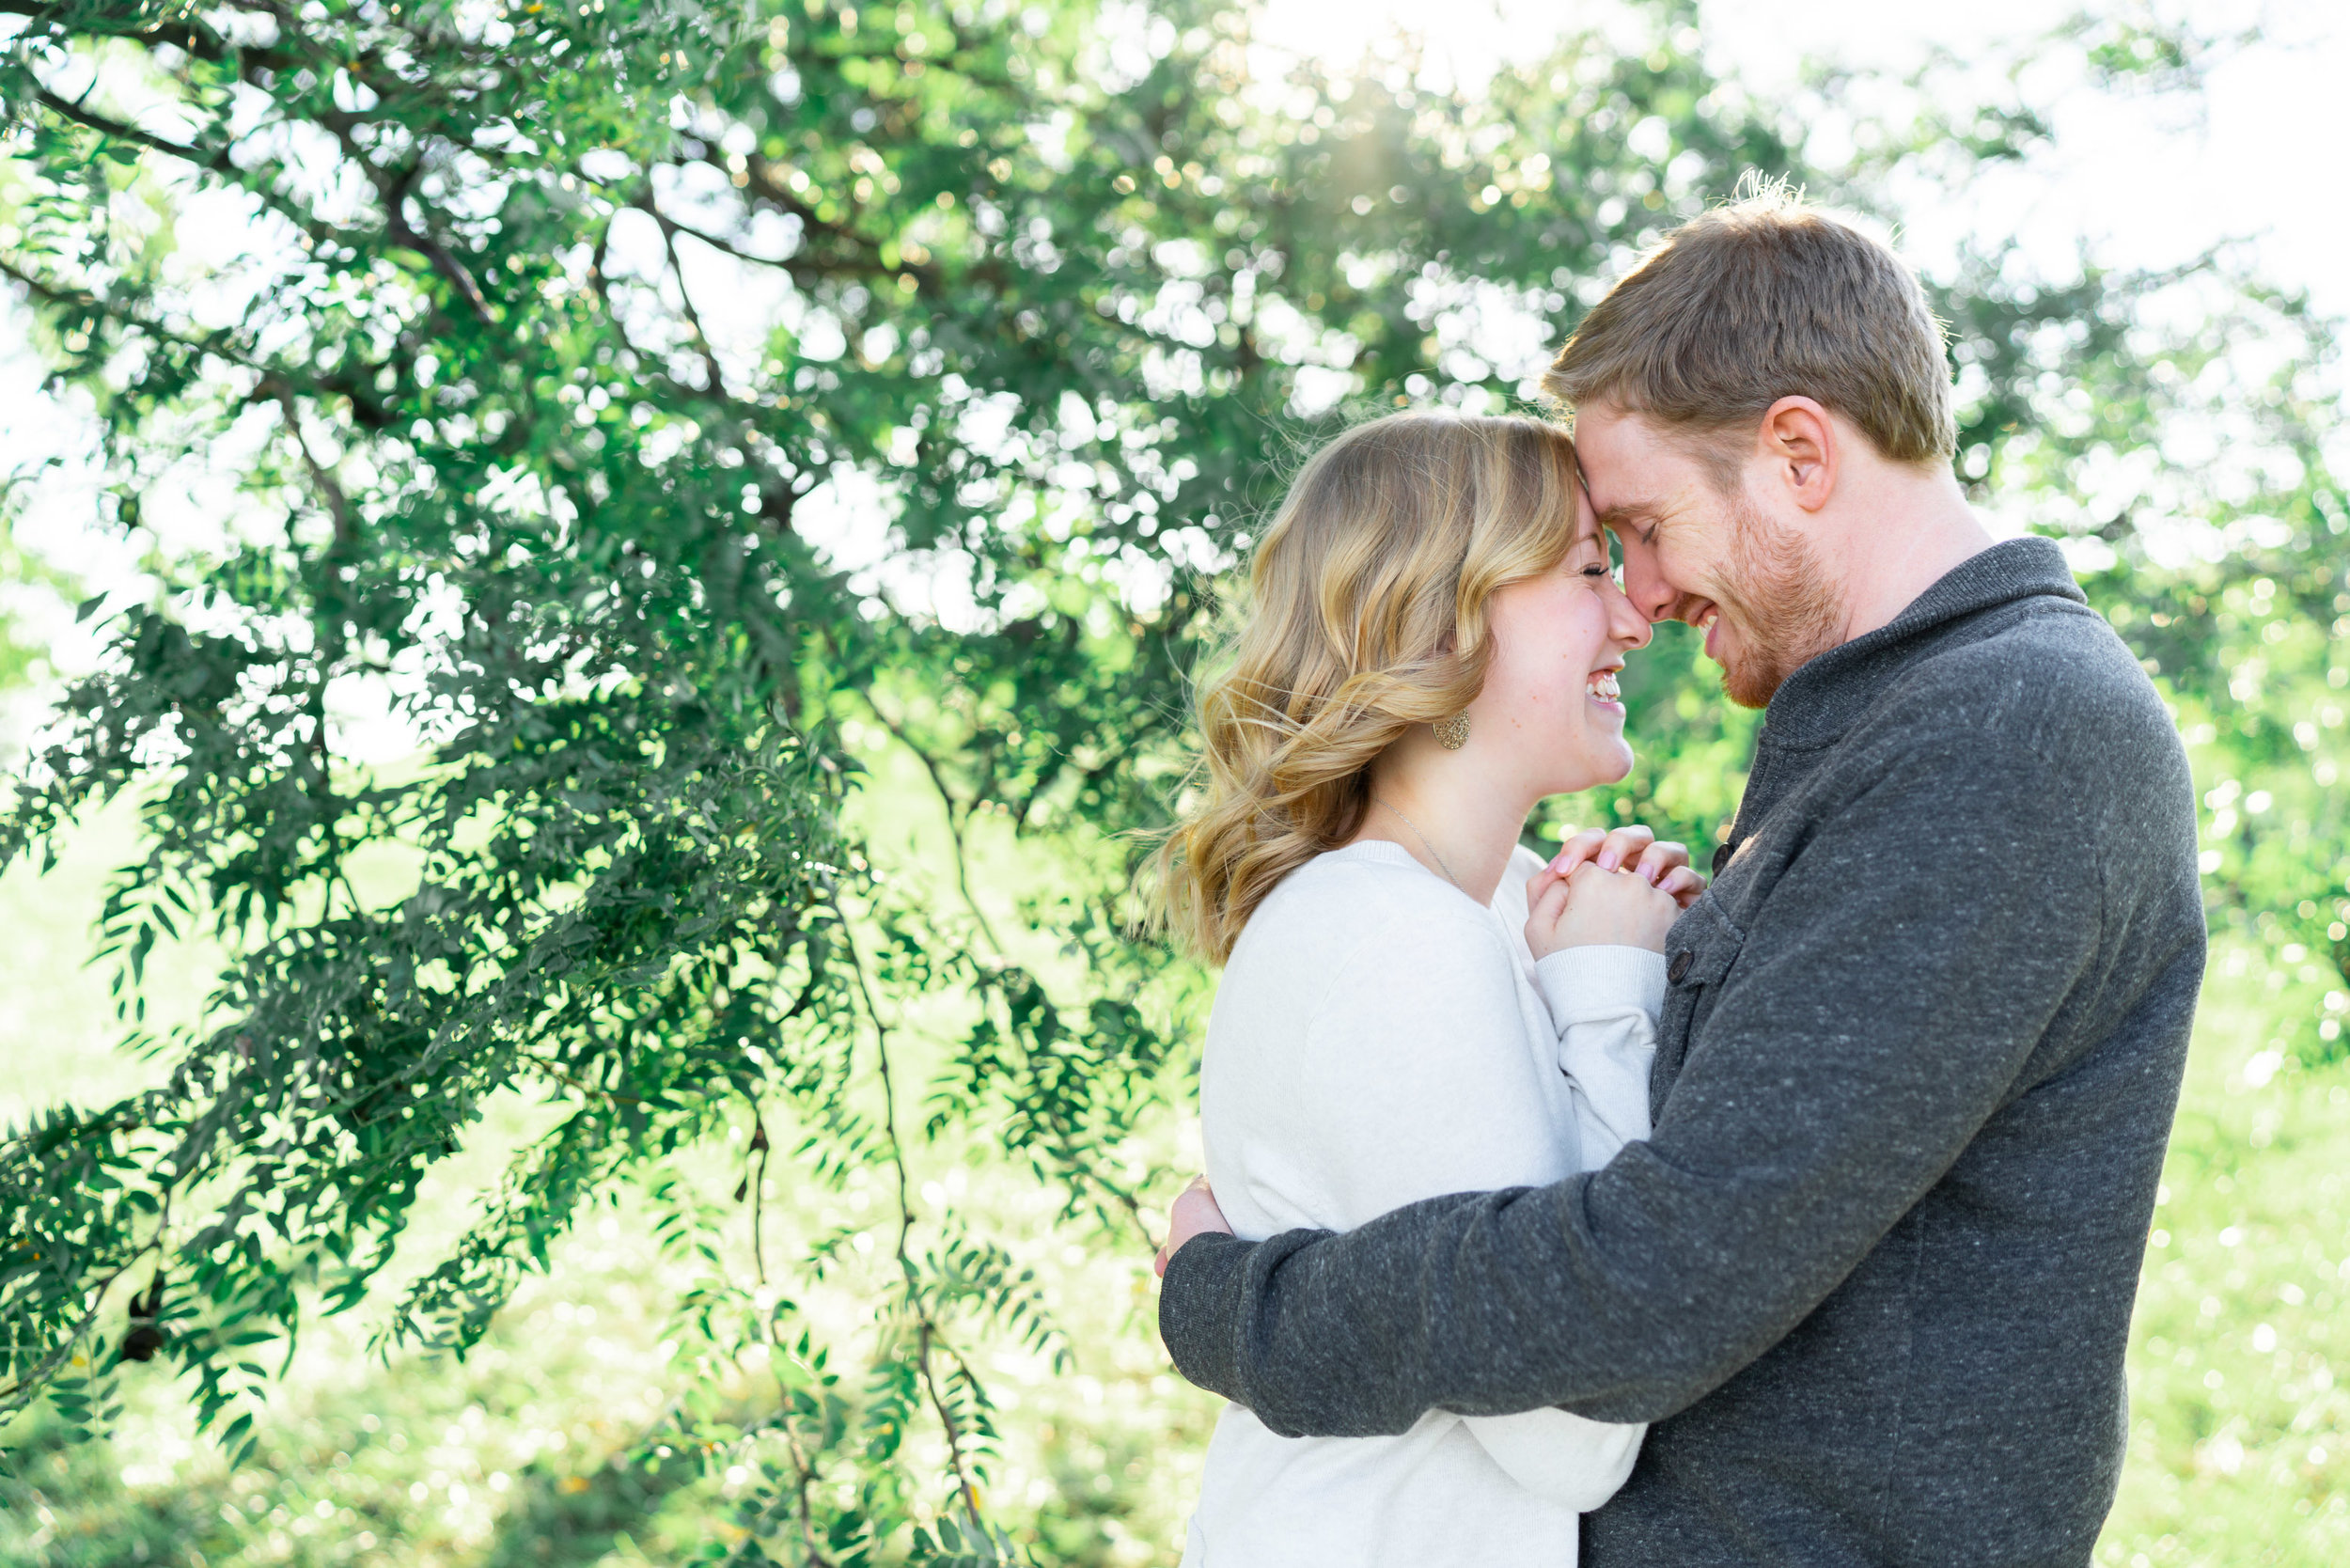 Baltimore Ft McHenry engagement session photos in fall